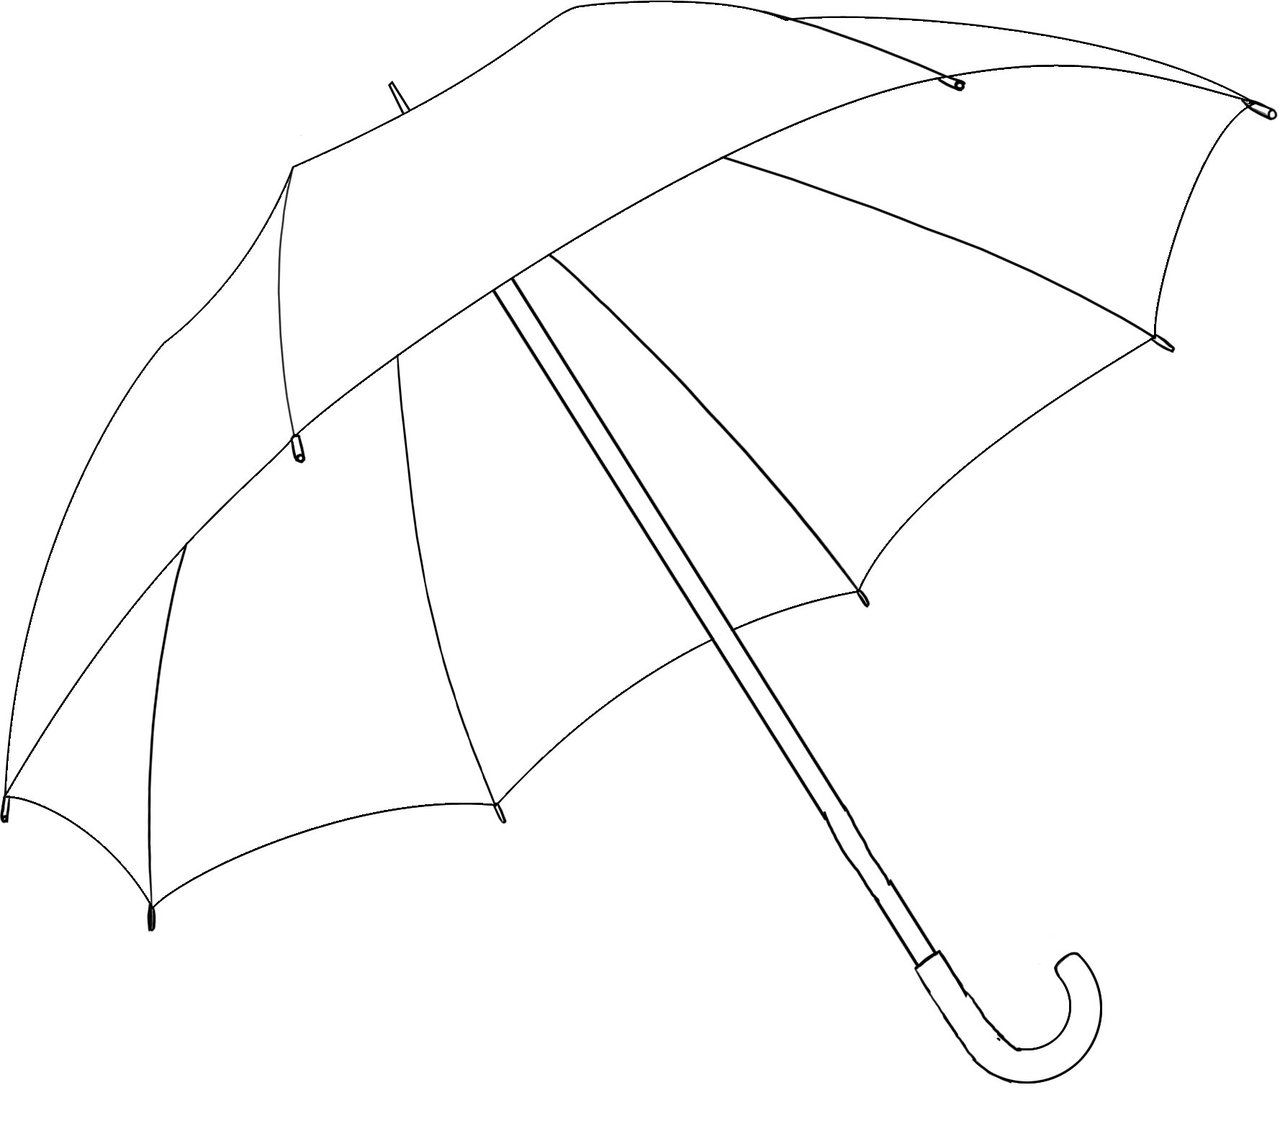 how to draw umbrella step by step umbrella drawing at getdrawings free download step to how step by umbrella draw